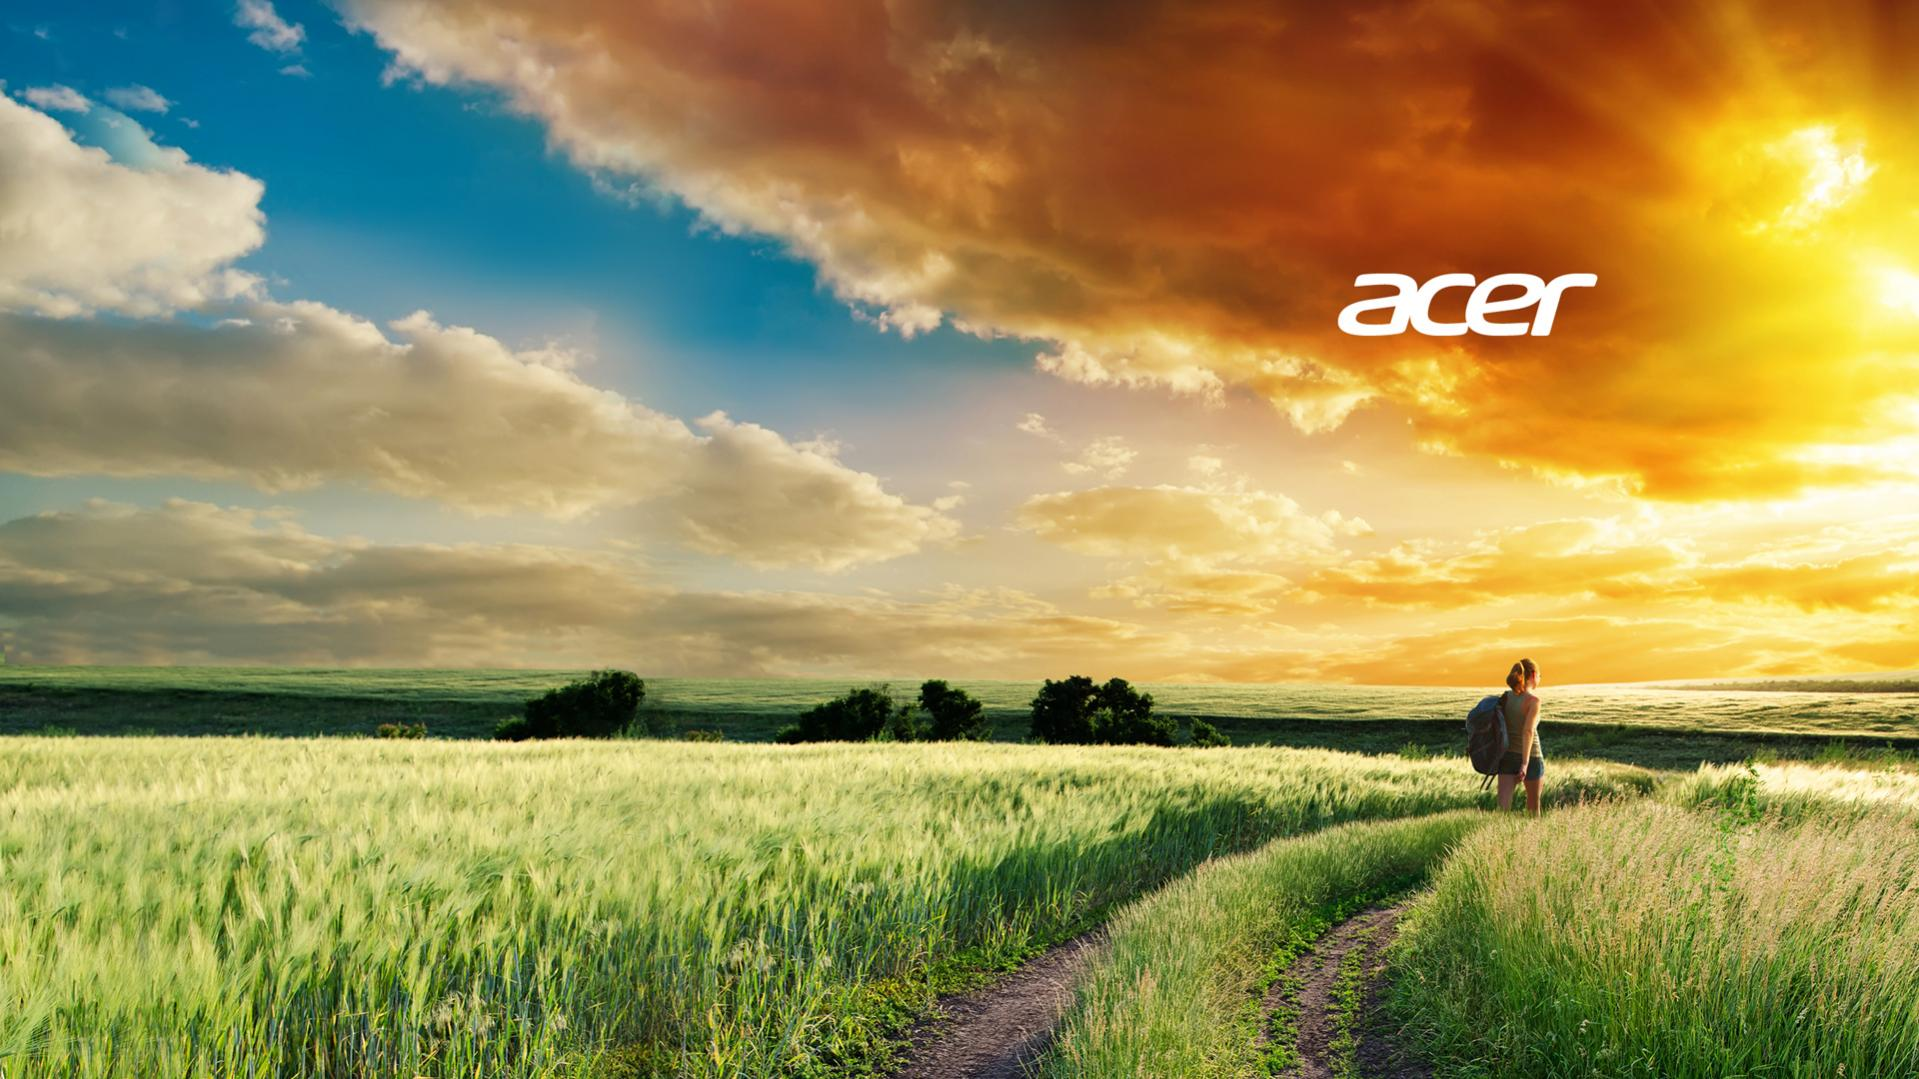 Acer HD Wallpaper Full HD Pictures 1919x1079